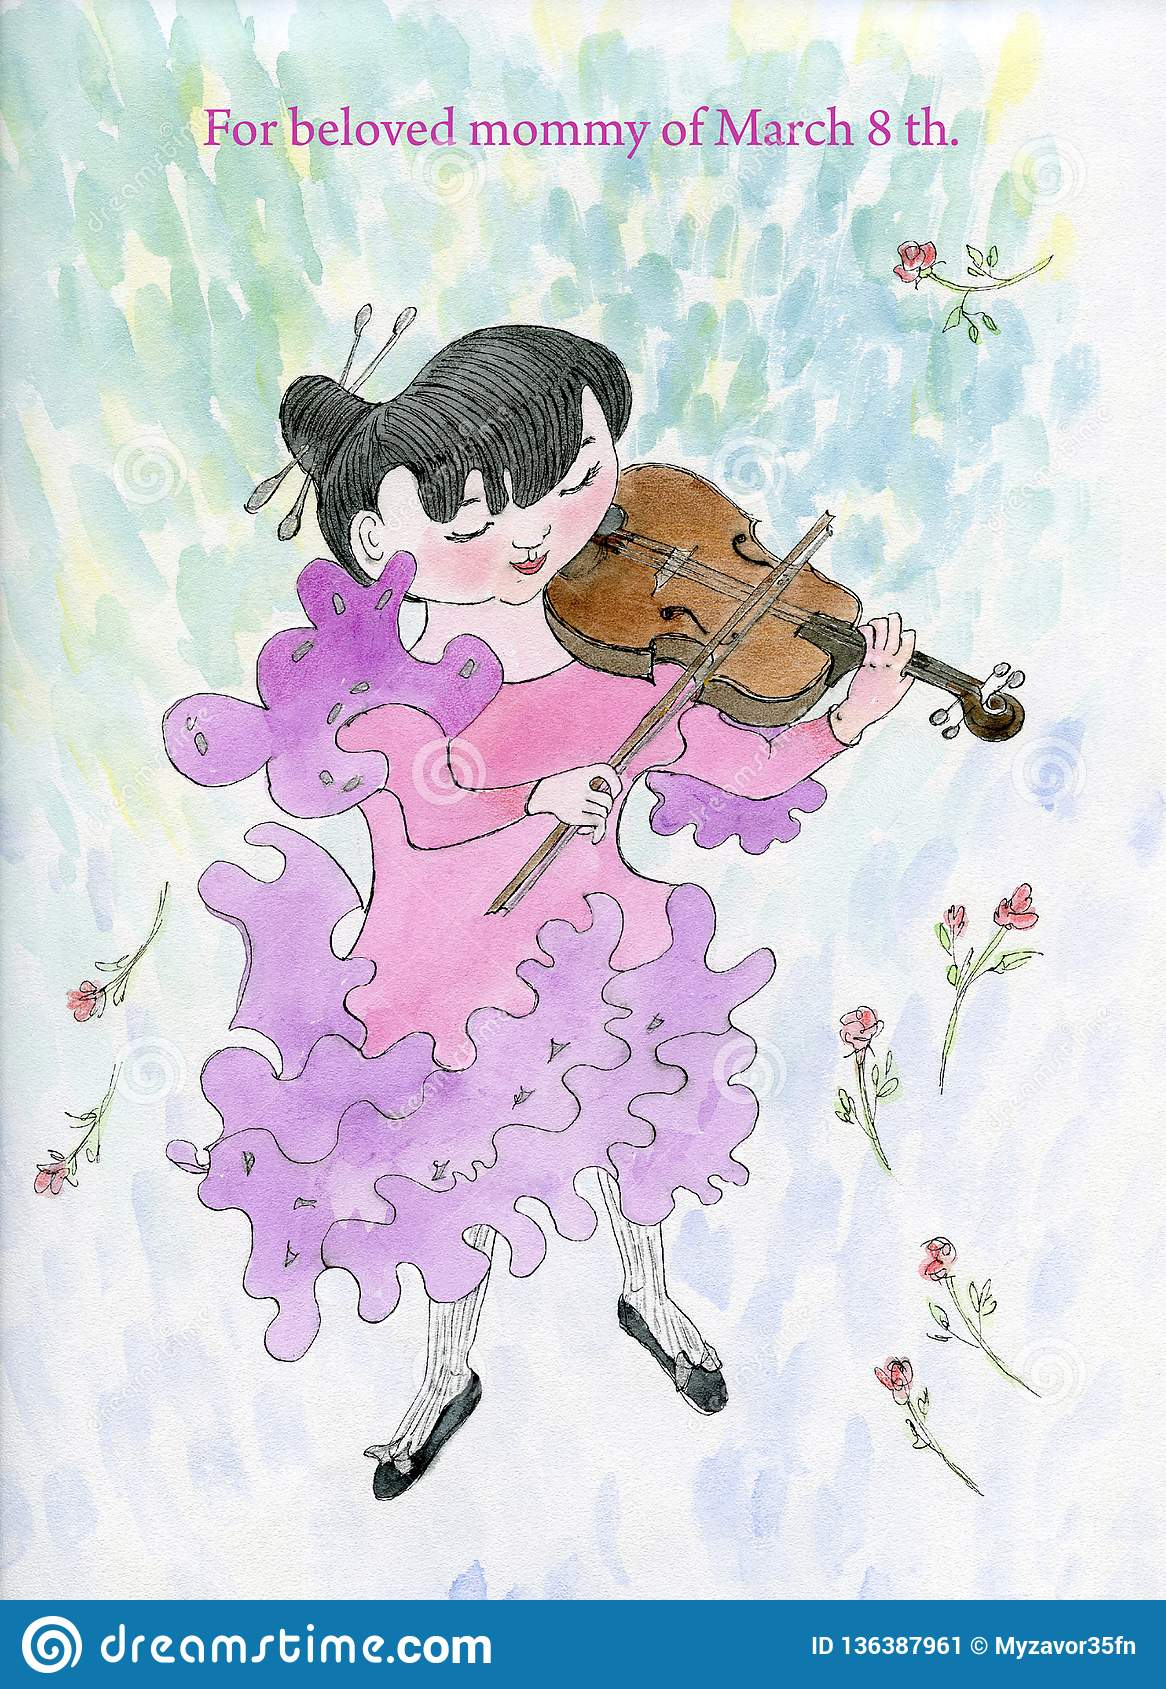 The girl plays the violin.